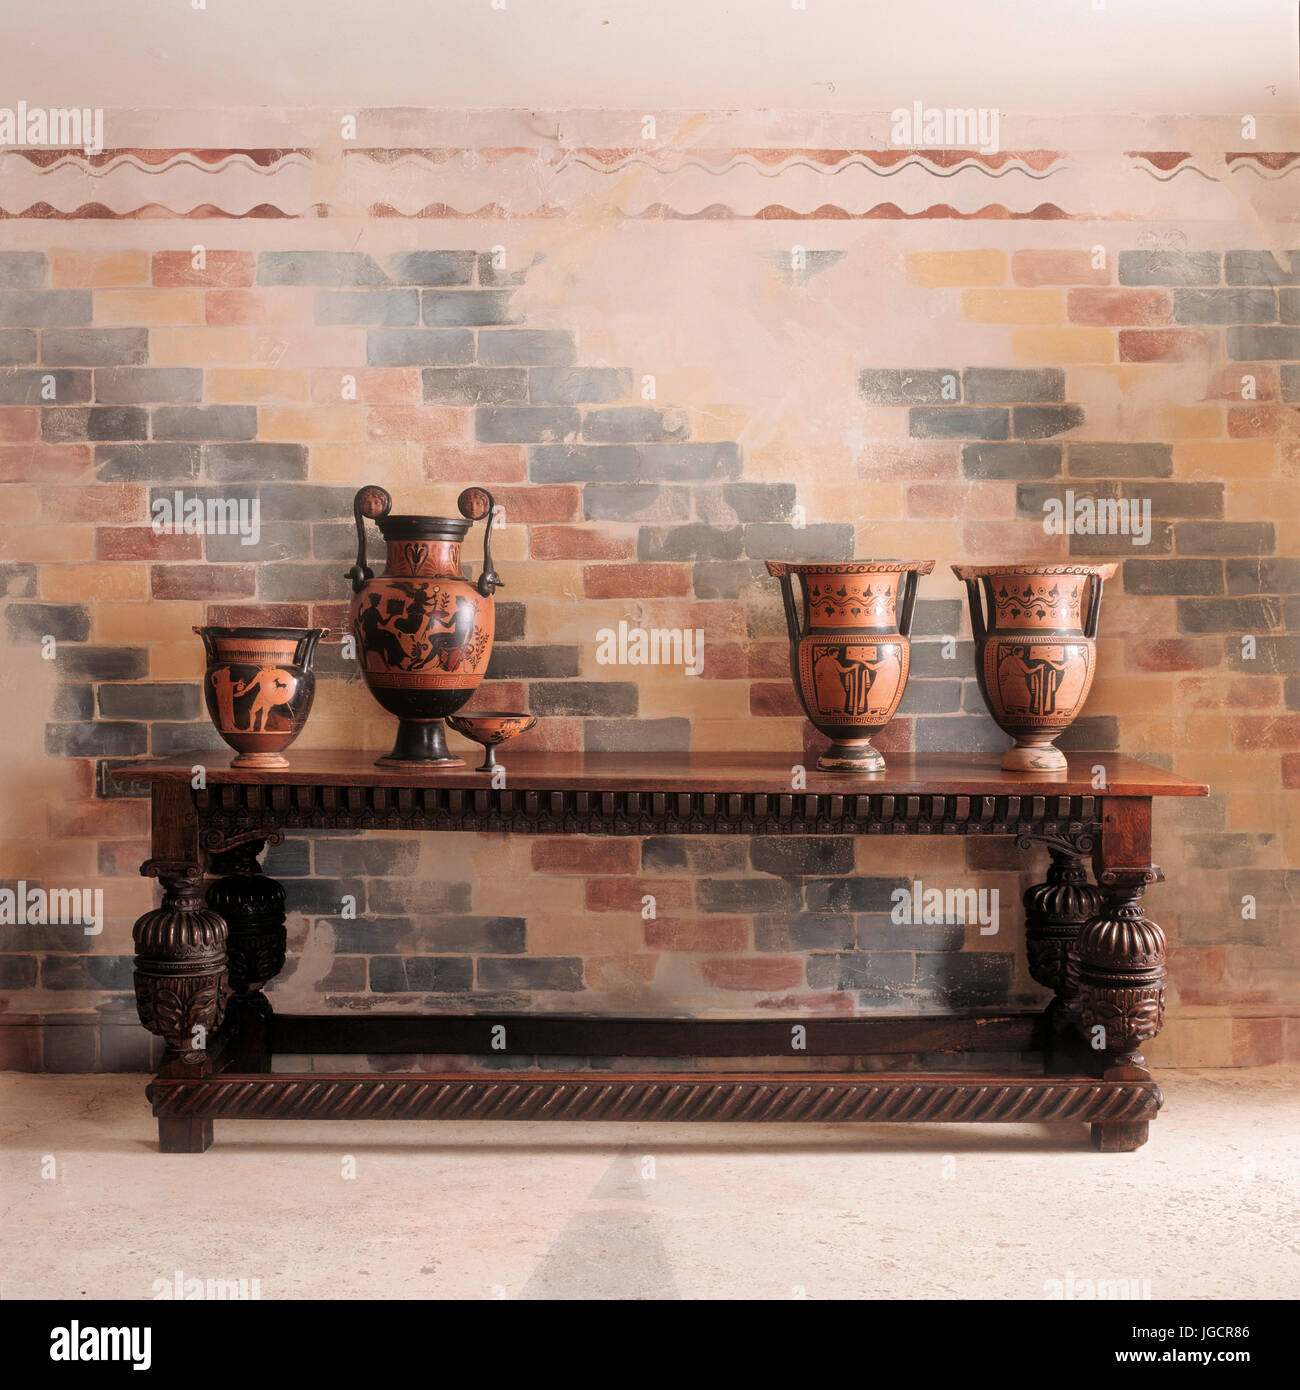 Vases on wooden table by brick wall - Stock Image